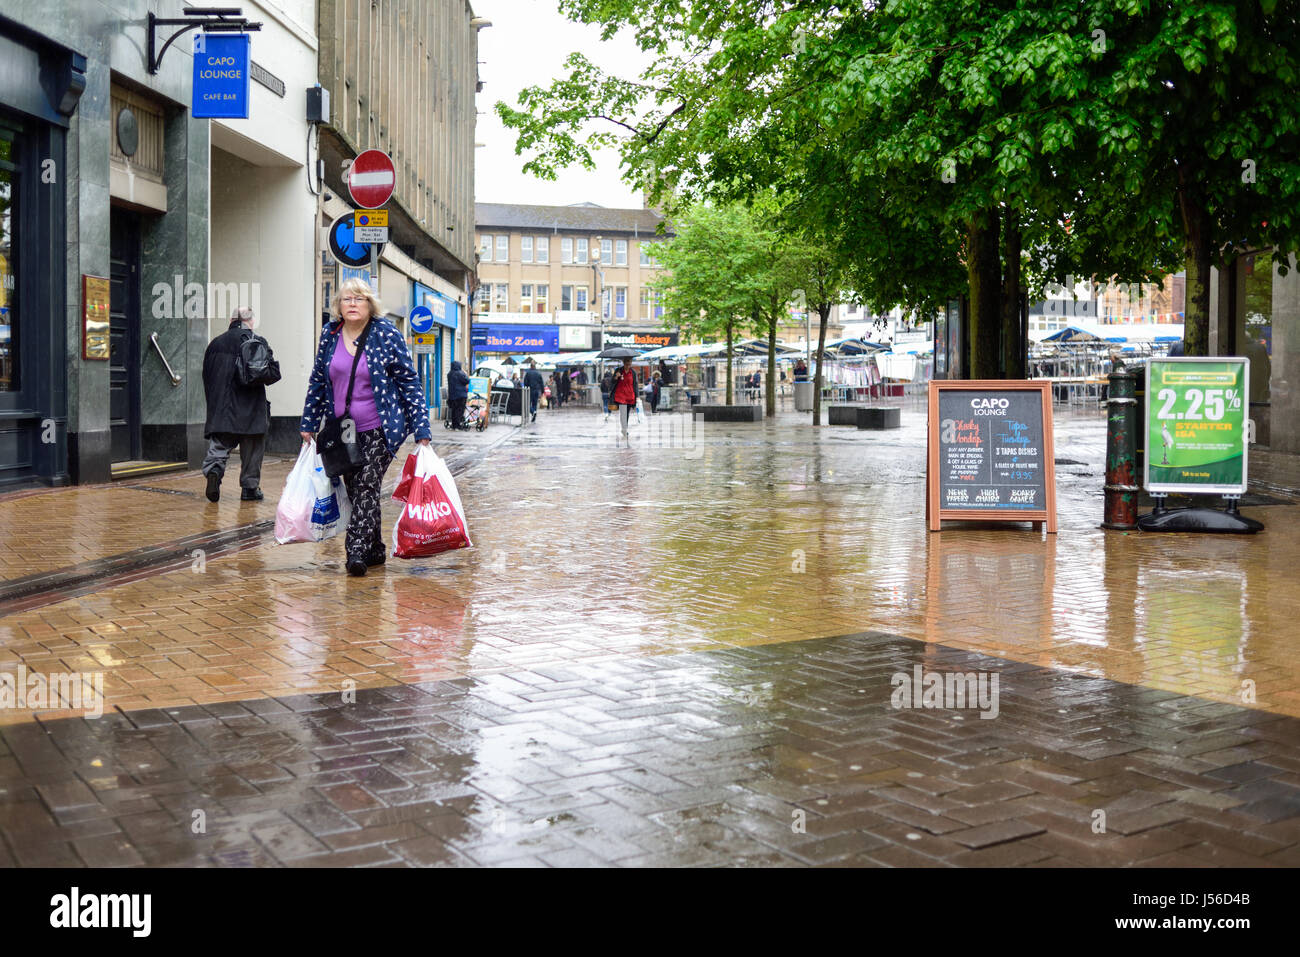 Mansfield, Nottinghamshire, UK: 17th May 2017. Torrential rain sweeps across the market town of Mansfield.Forecasters Stock Photo